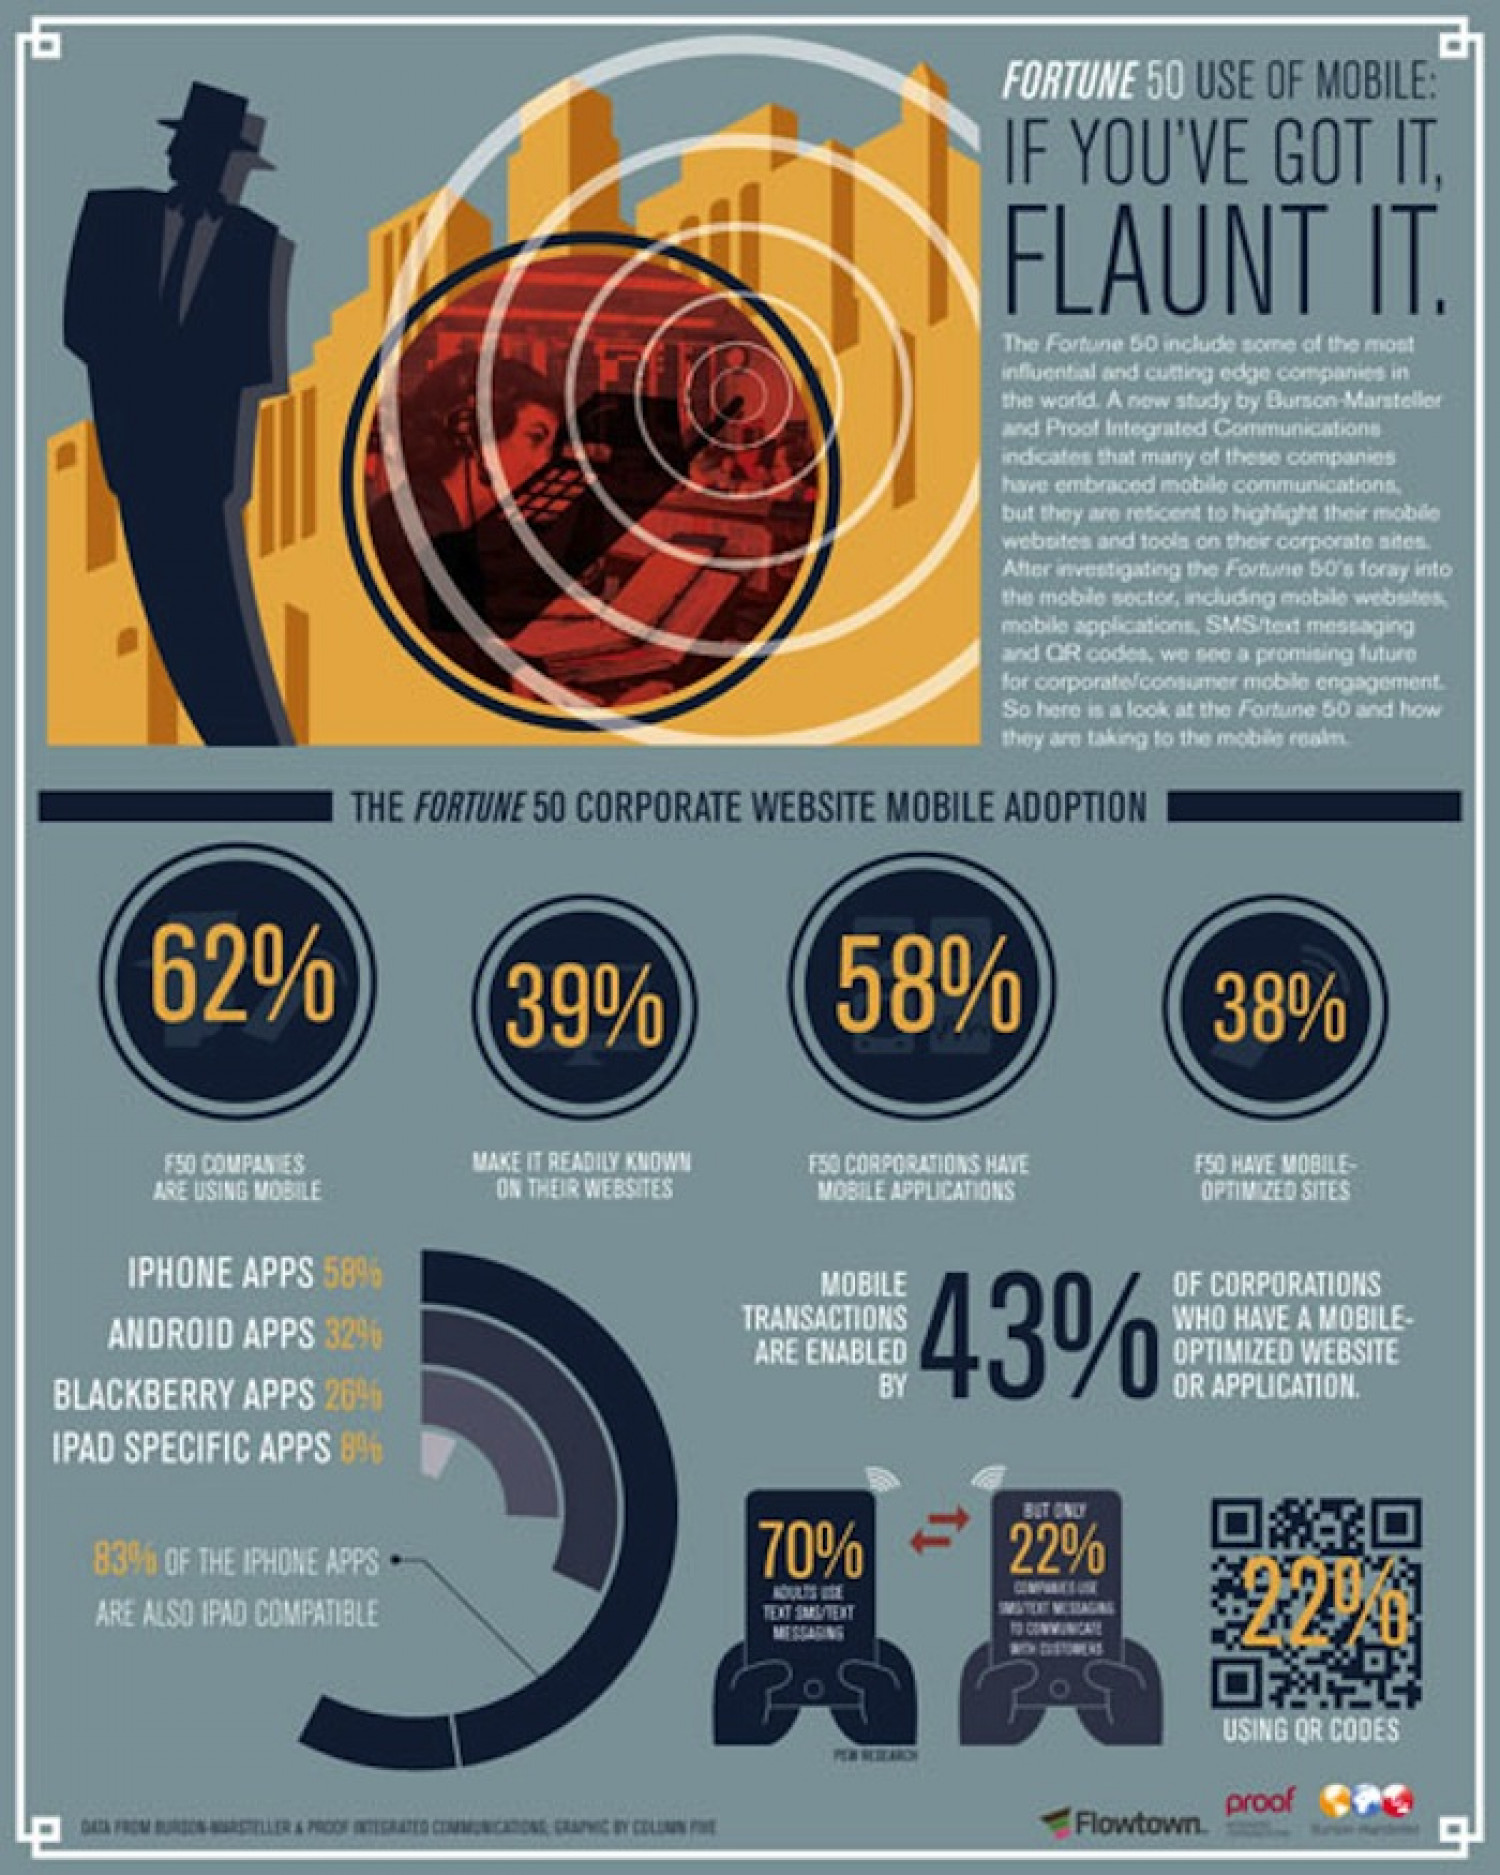 If You've Got It, Flaunt It Infographic